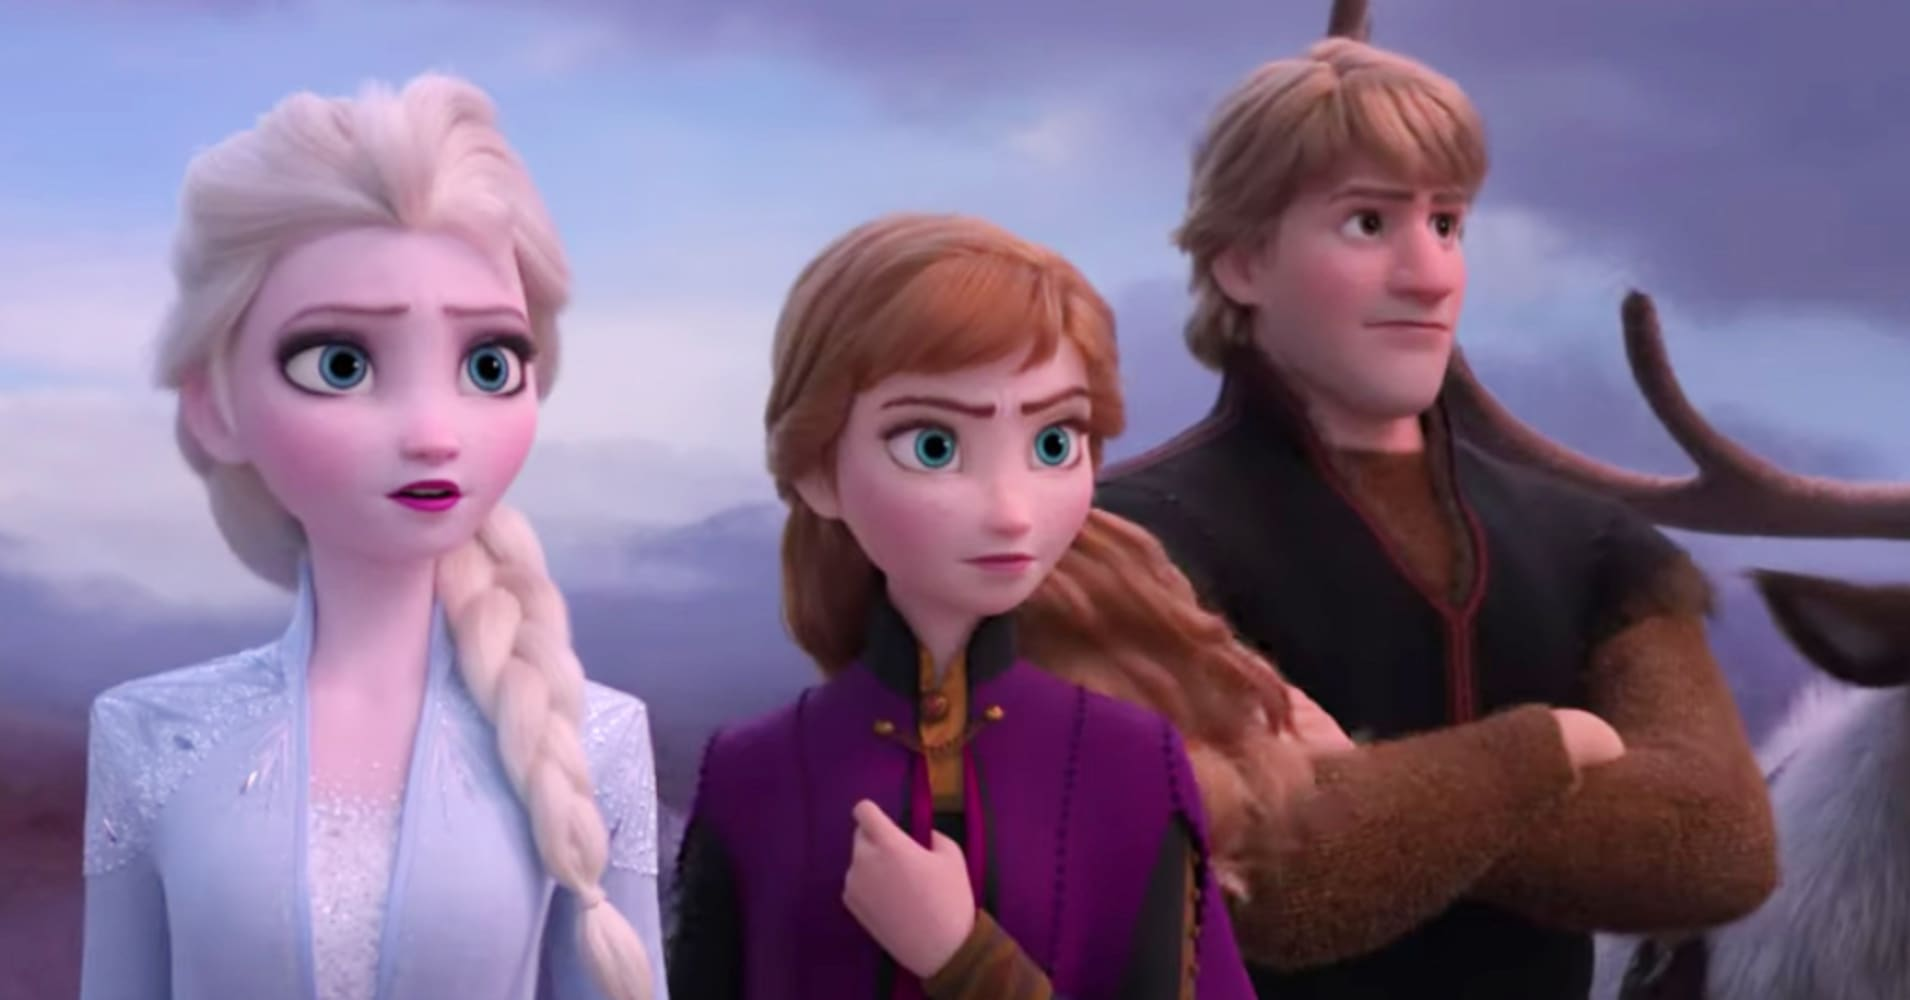 Disney releases 'Frozen 2' trailer as it hopes for a big rebound at the holiday box office